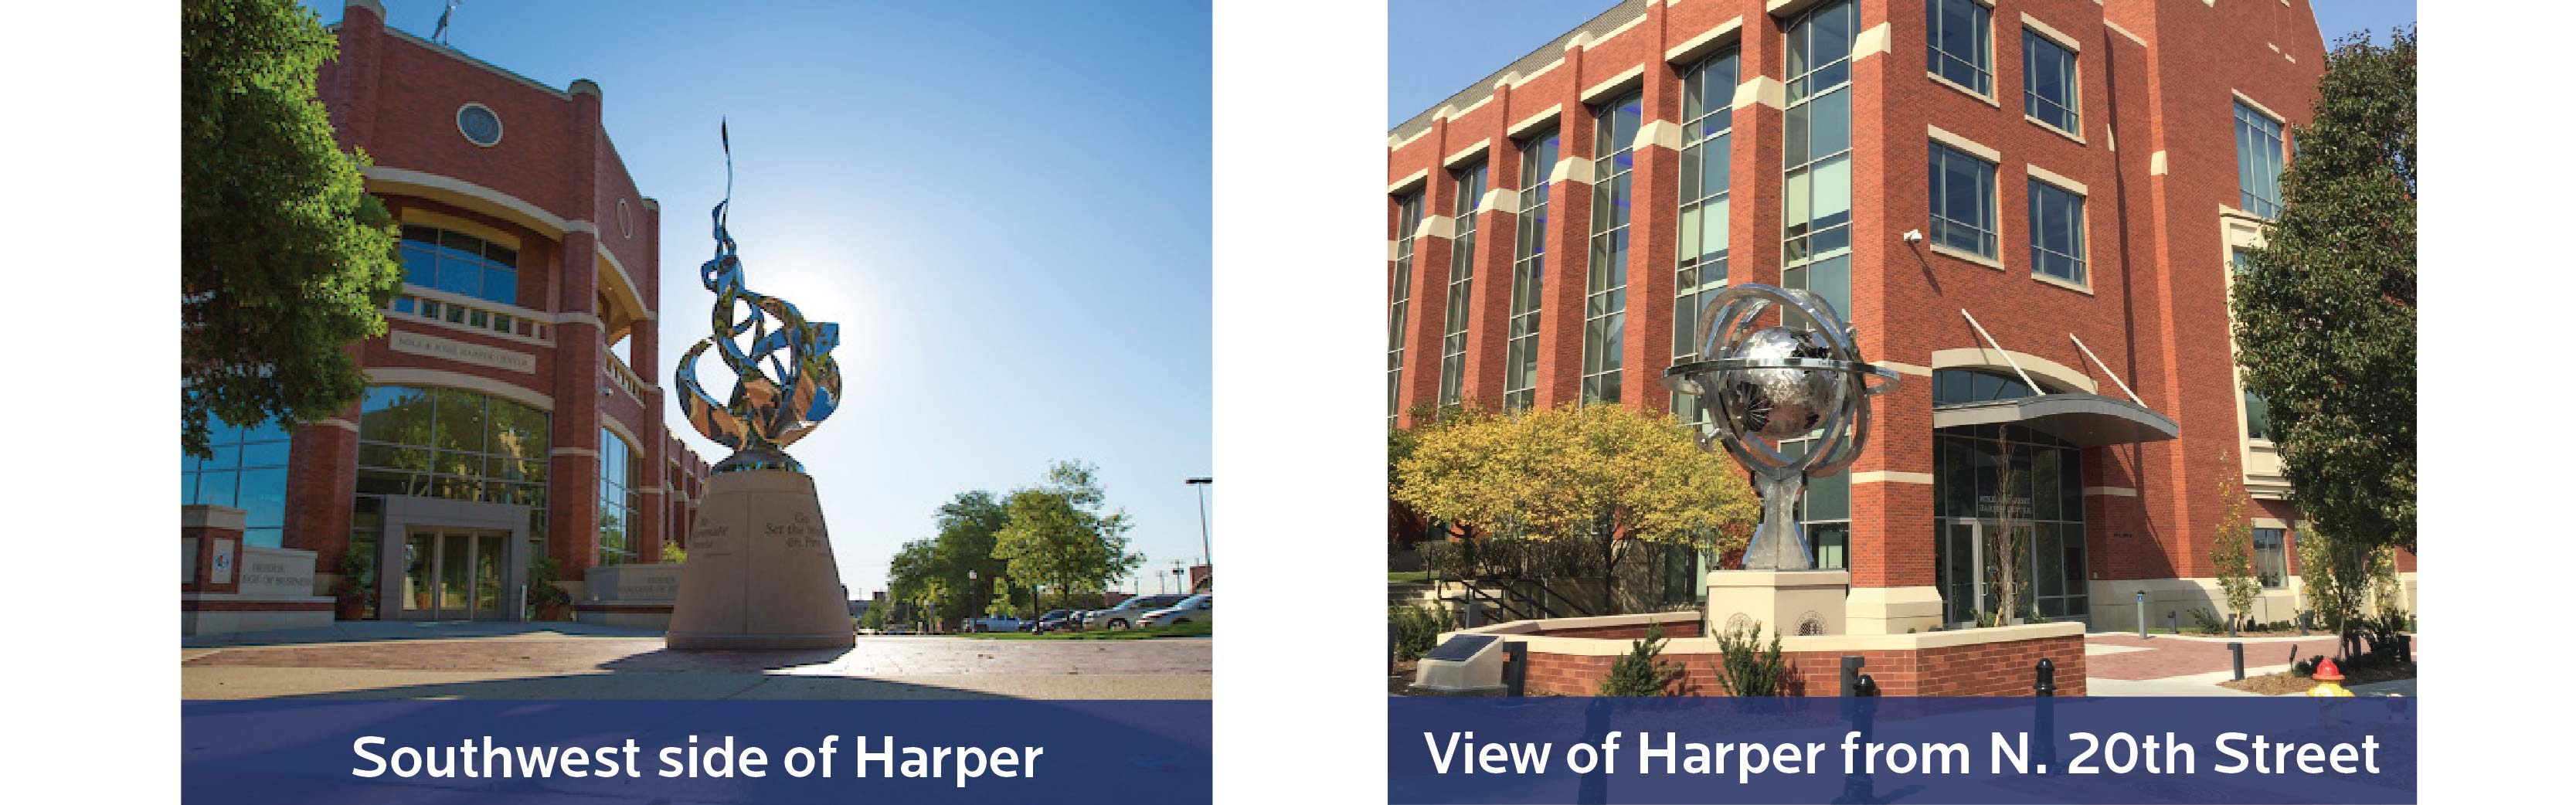 Views of Harper Center